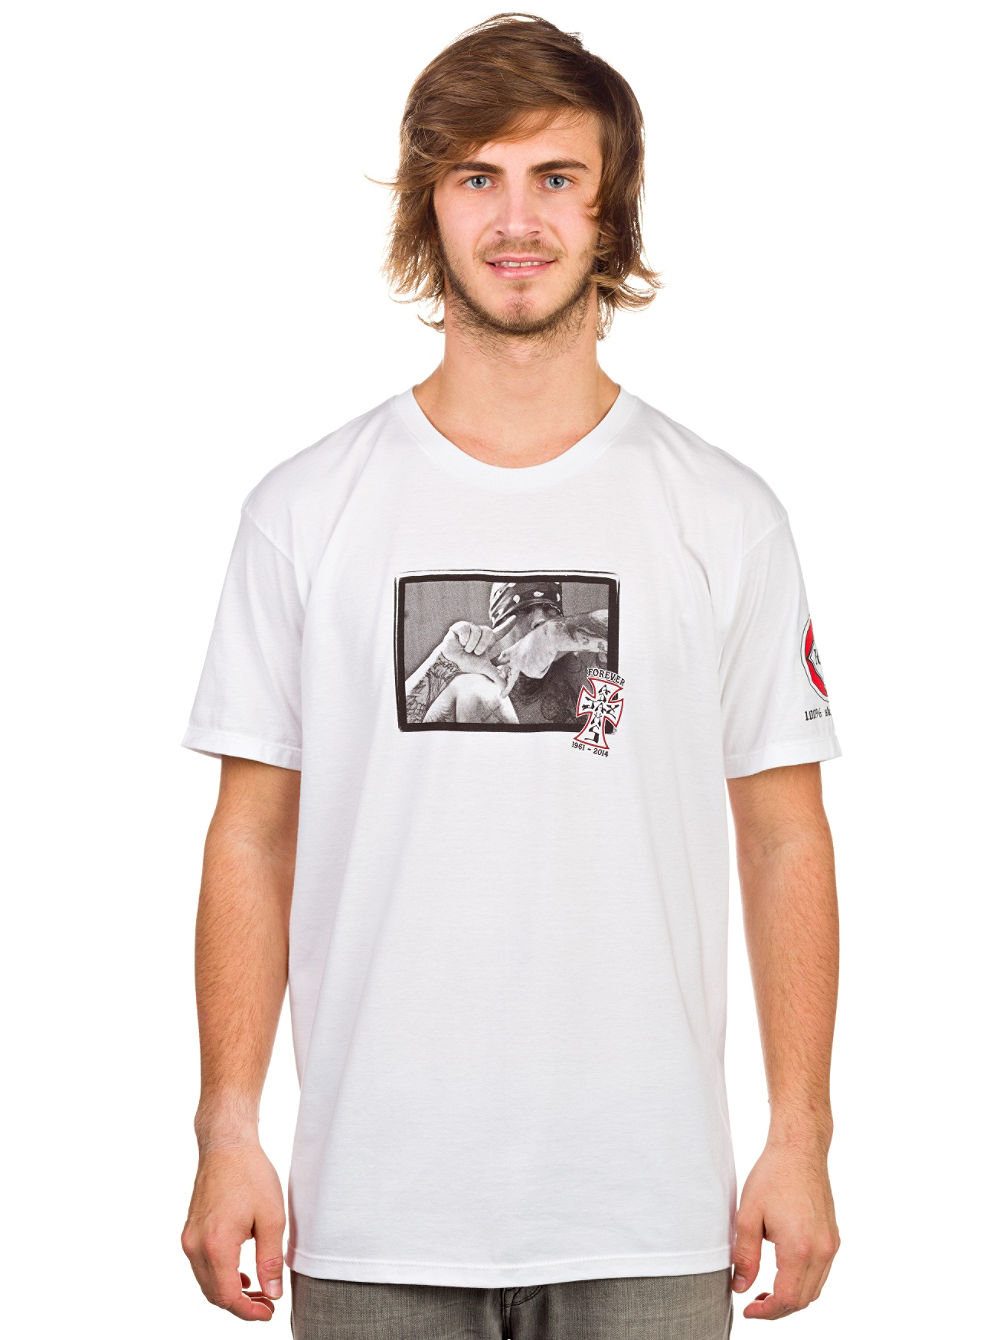 jay-adams-la-t-shirt